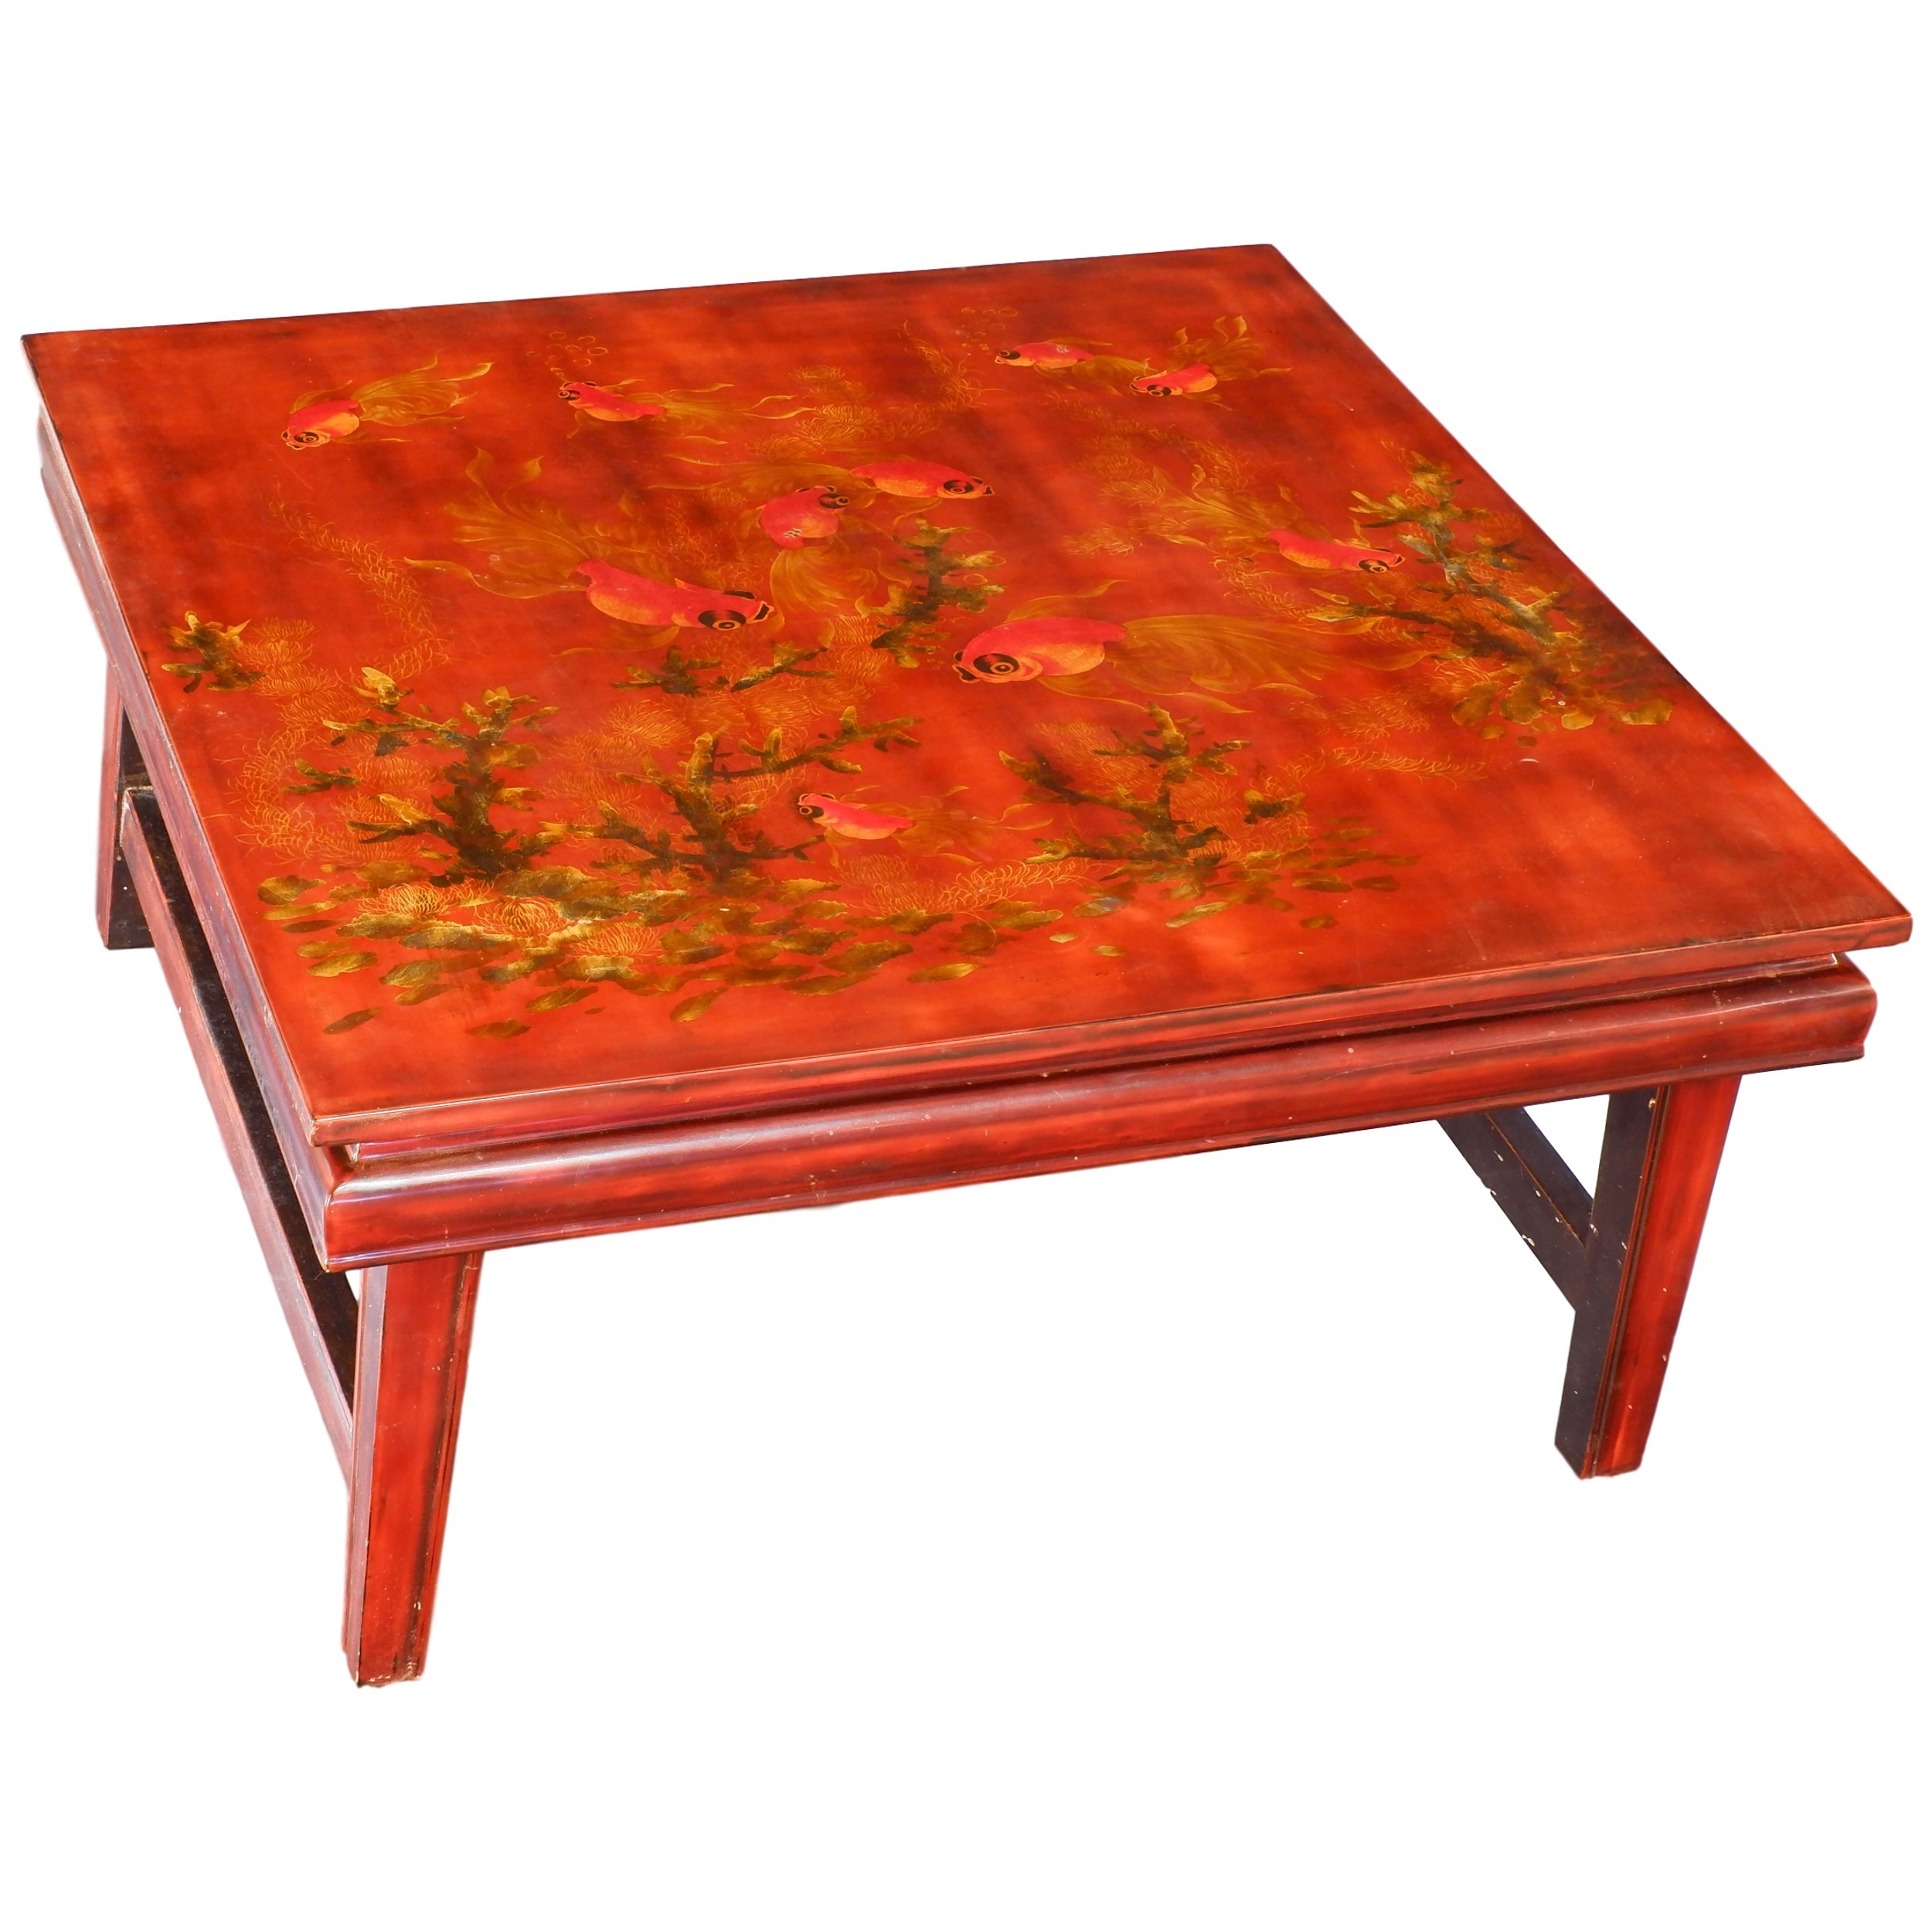 'Vietnamese Lacquer Low Table Decorated with Goldfish'